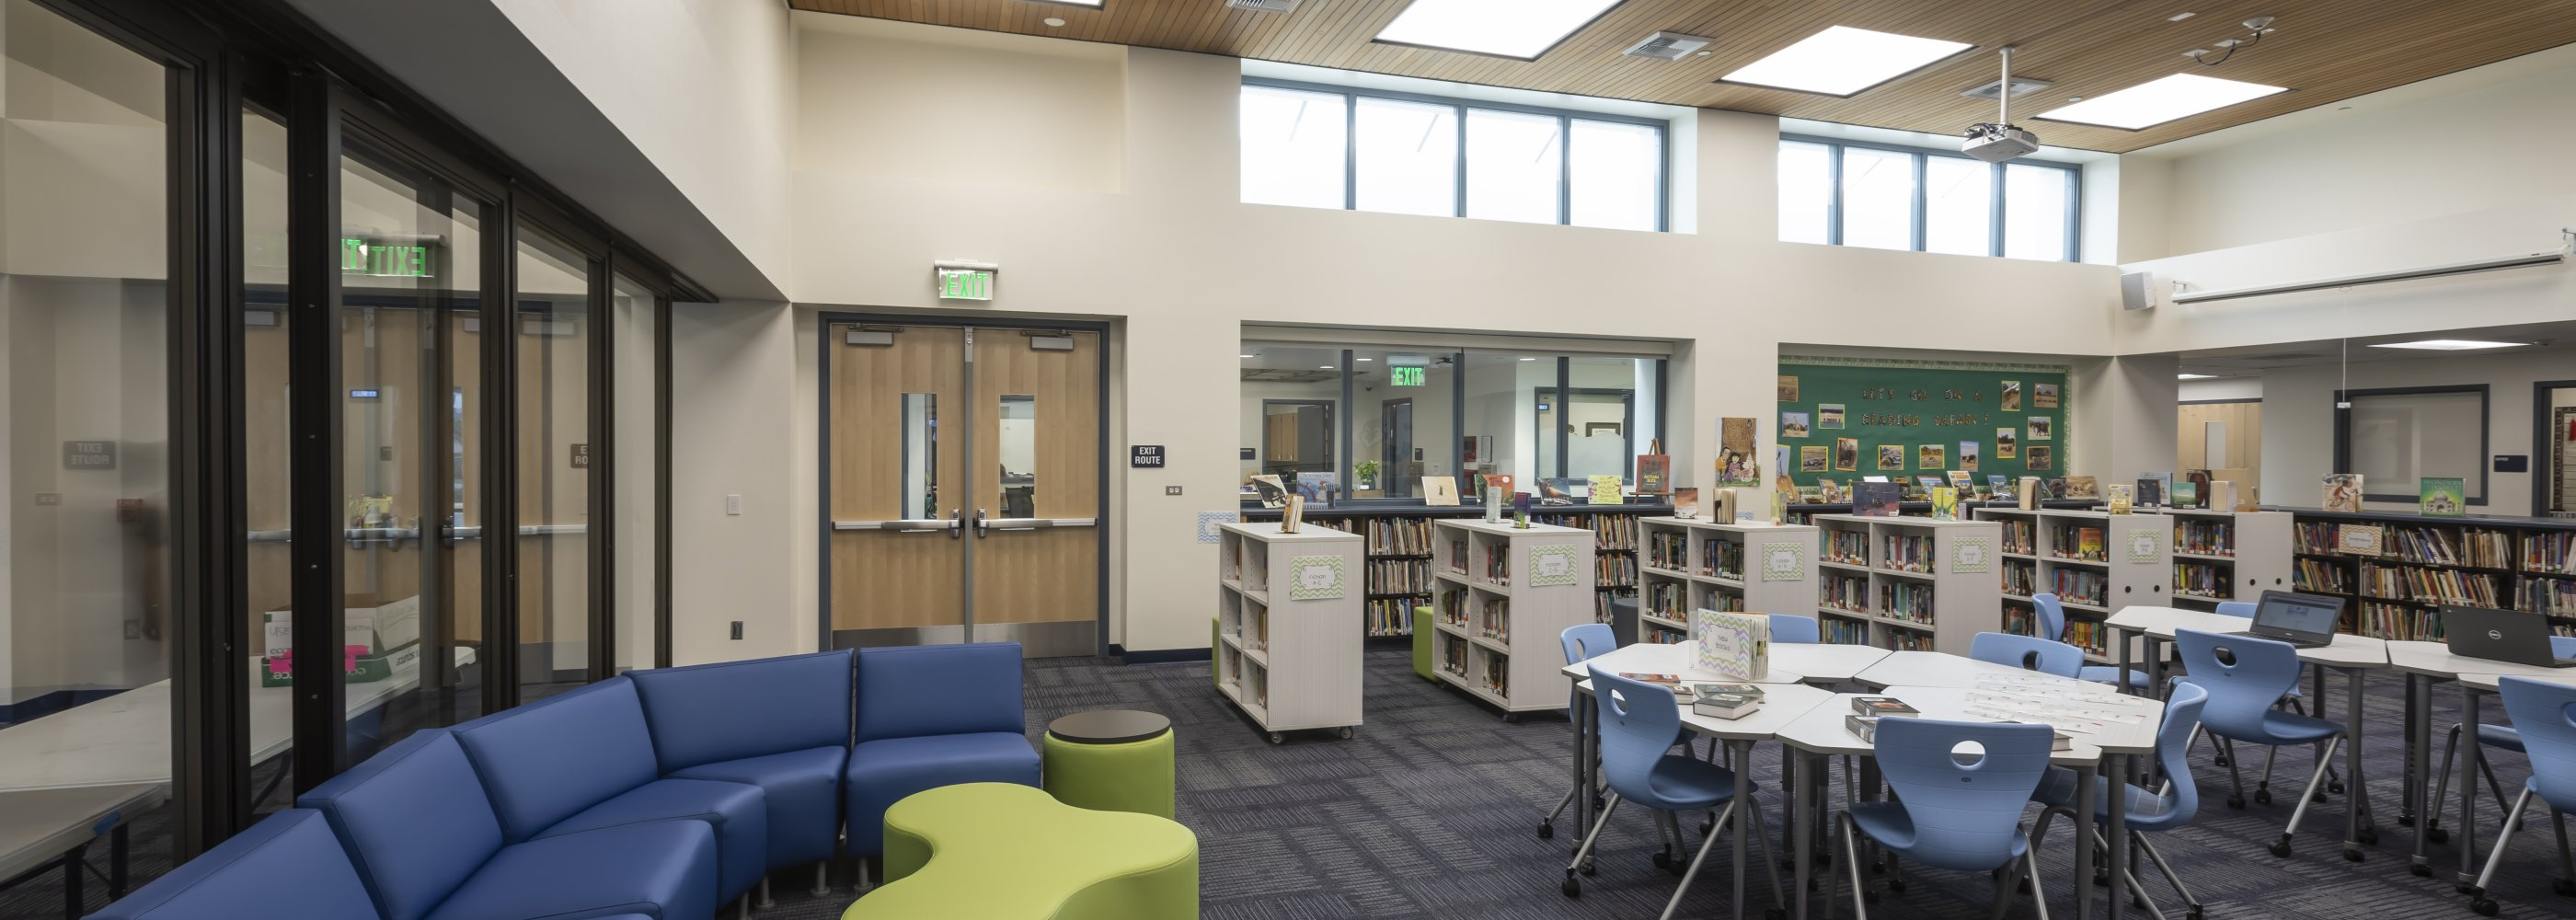 Brywood Library Seating Area